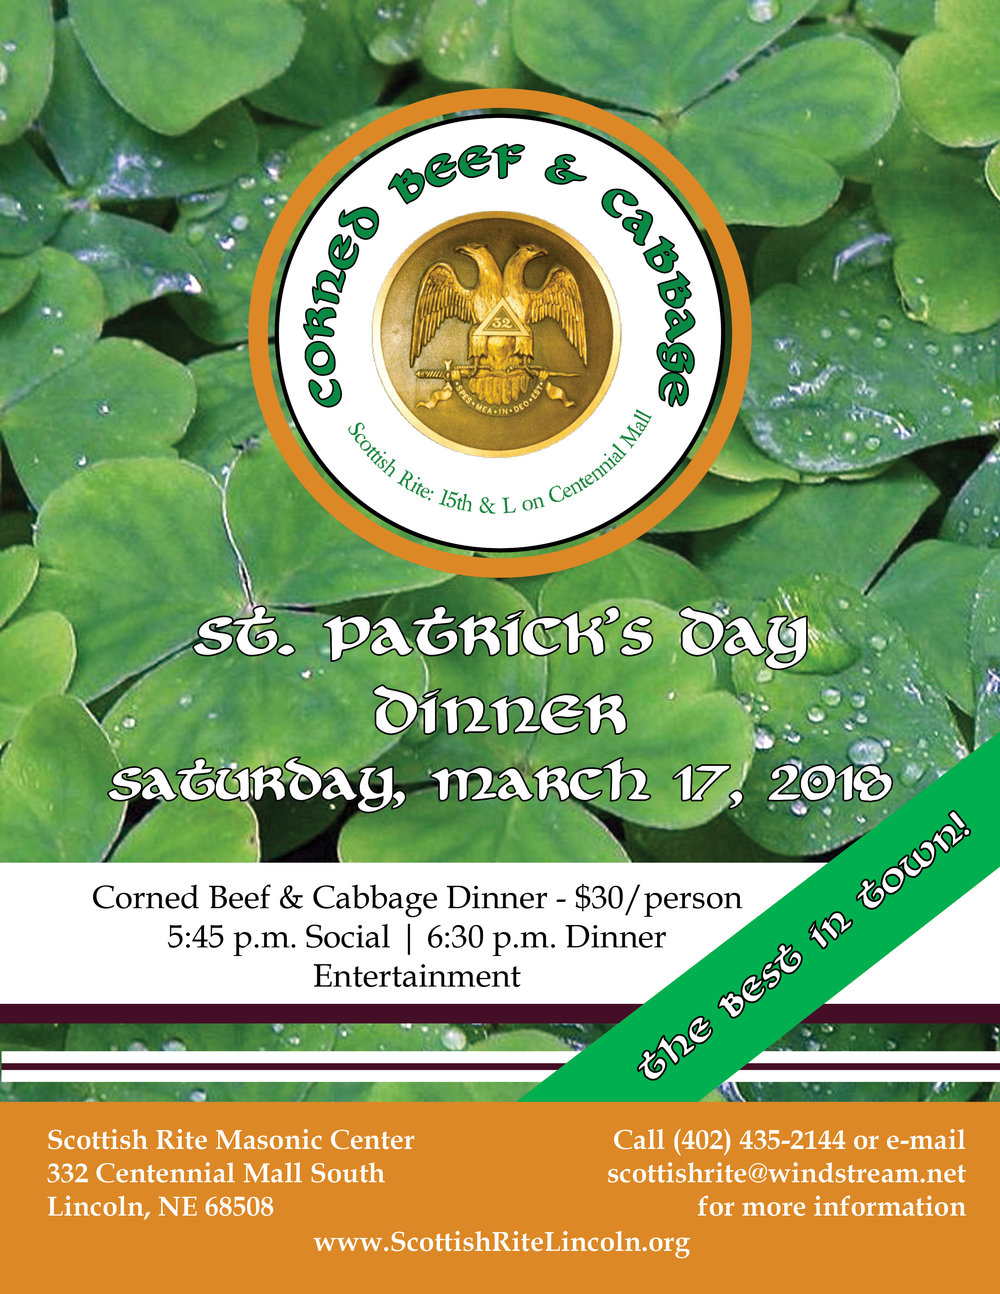 Click above to download a PDF of the St. Patrick's Day dinner flier.